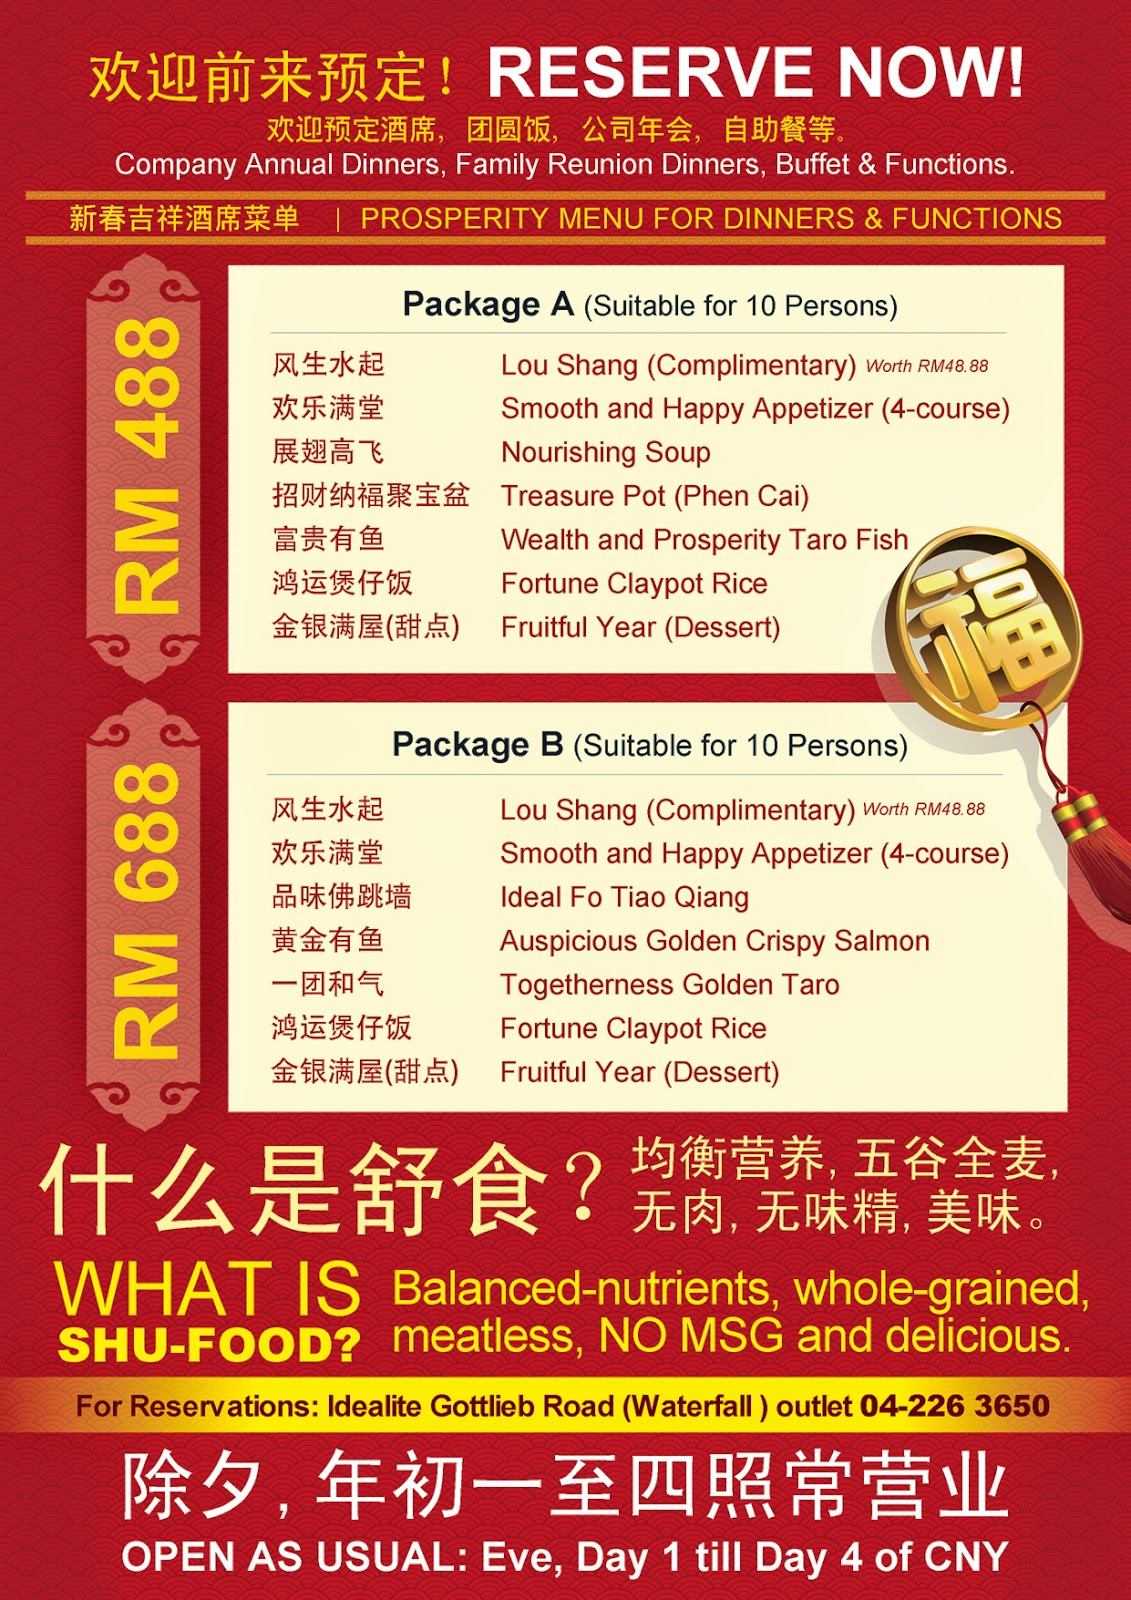 Idealite Restaurant - Chinese New Year Menu